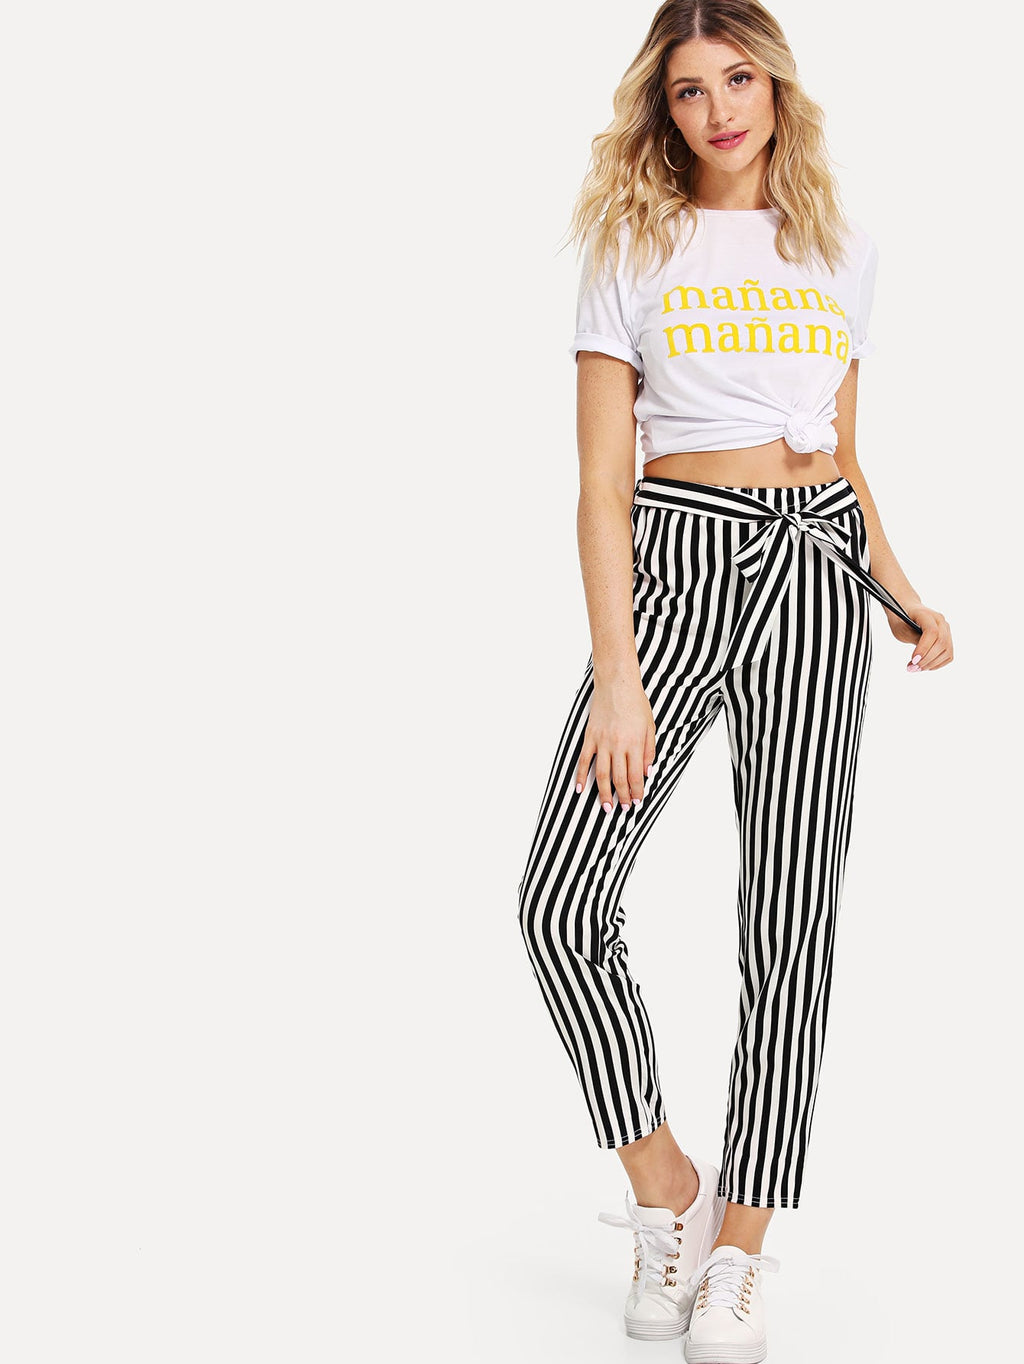 Pants For Women - Self Tie Waist Striped Pants